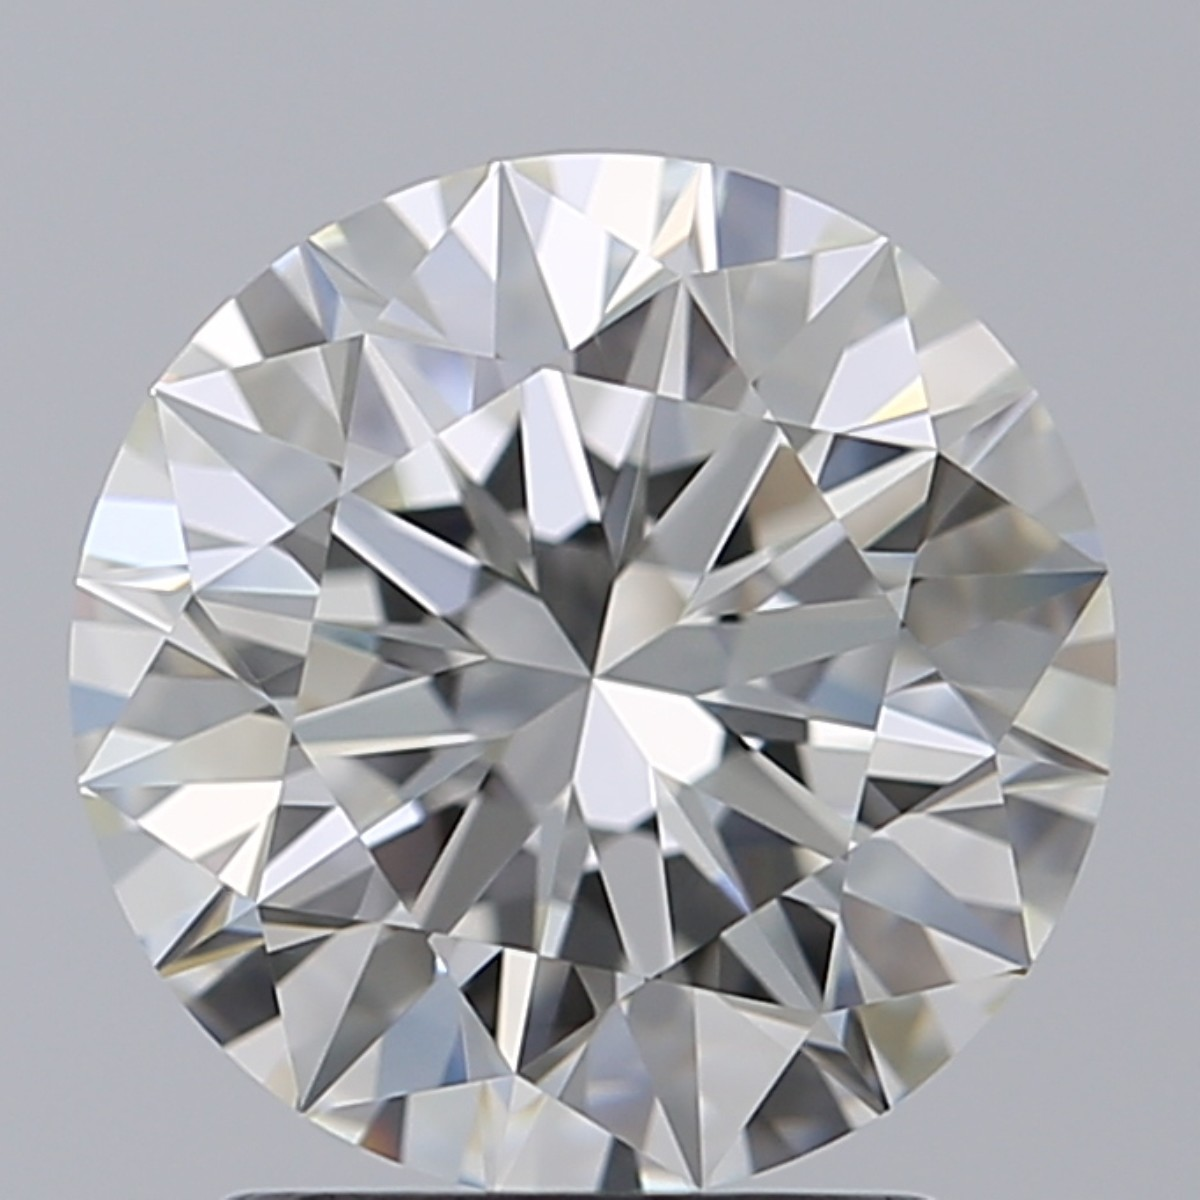 2.07 Carat Round Brilliant Diamond (I/VVS1)